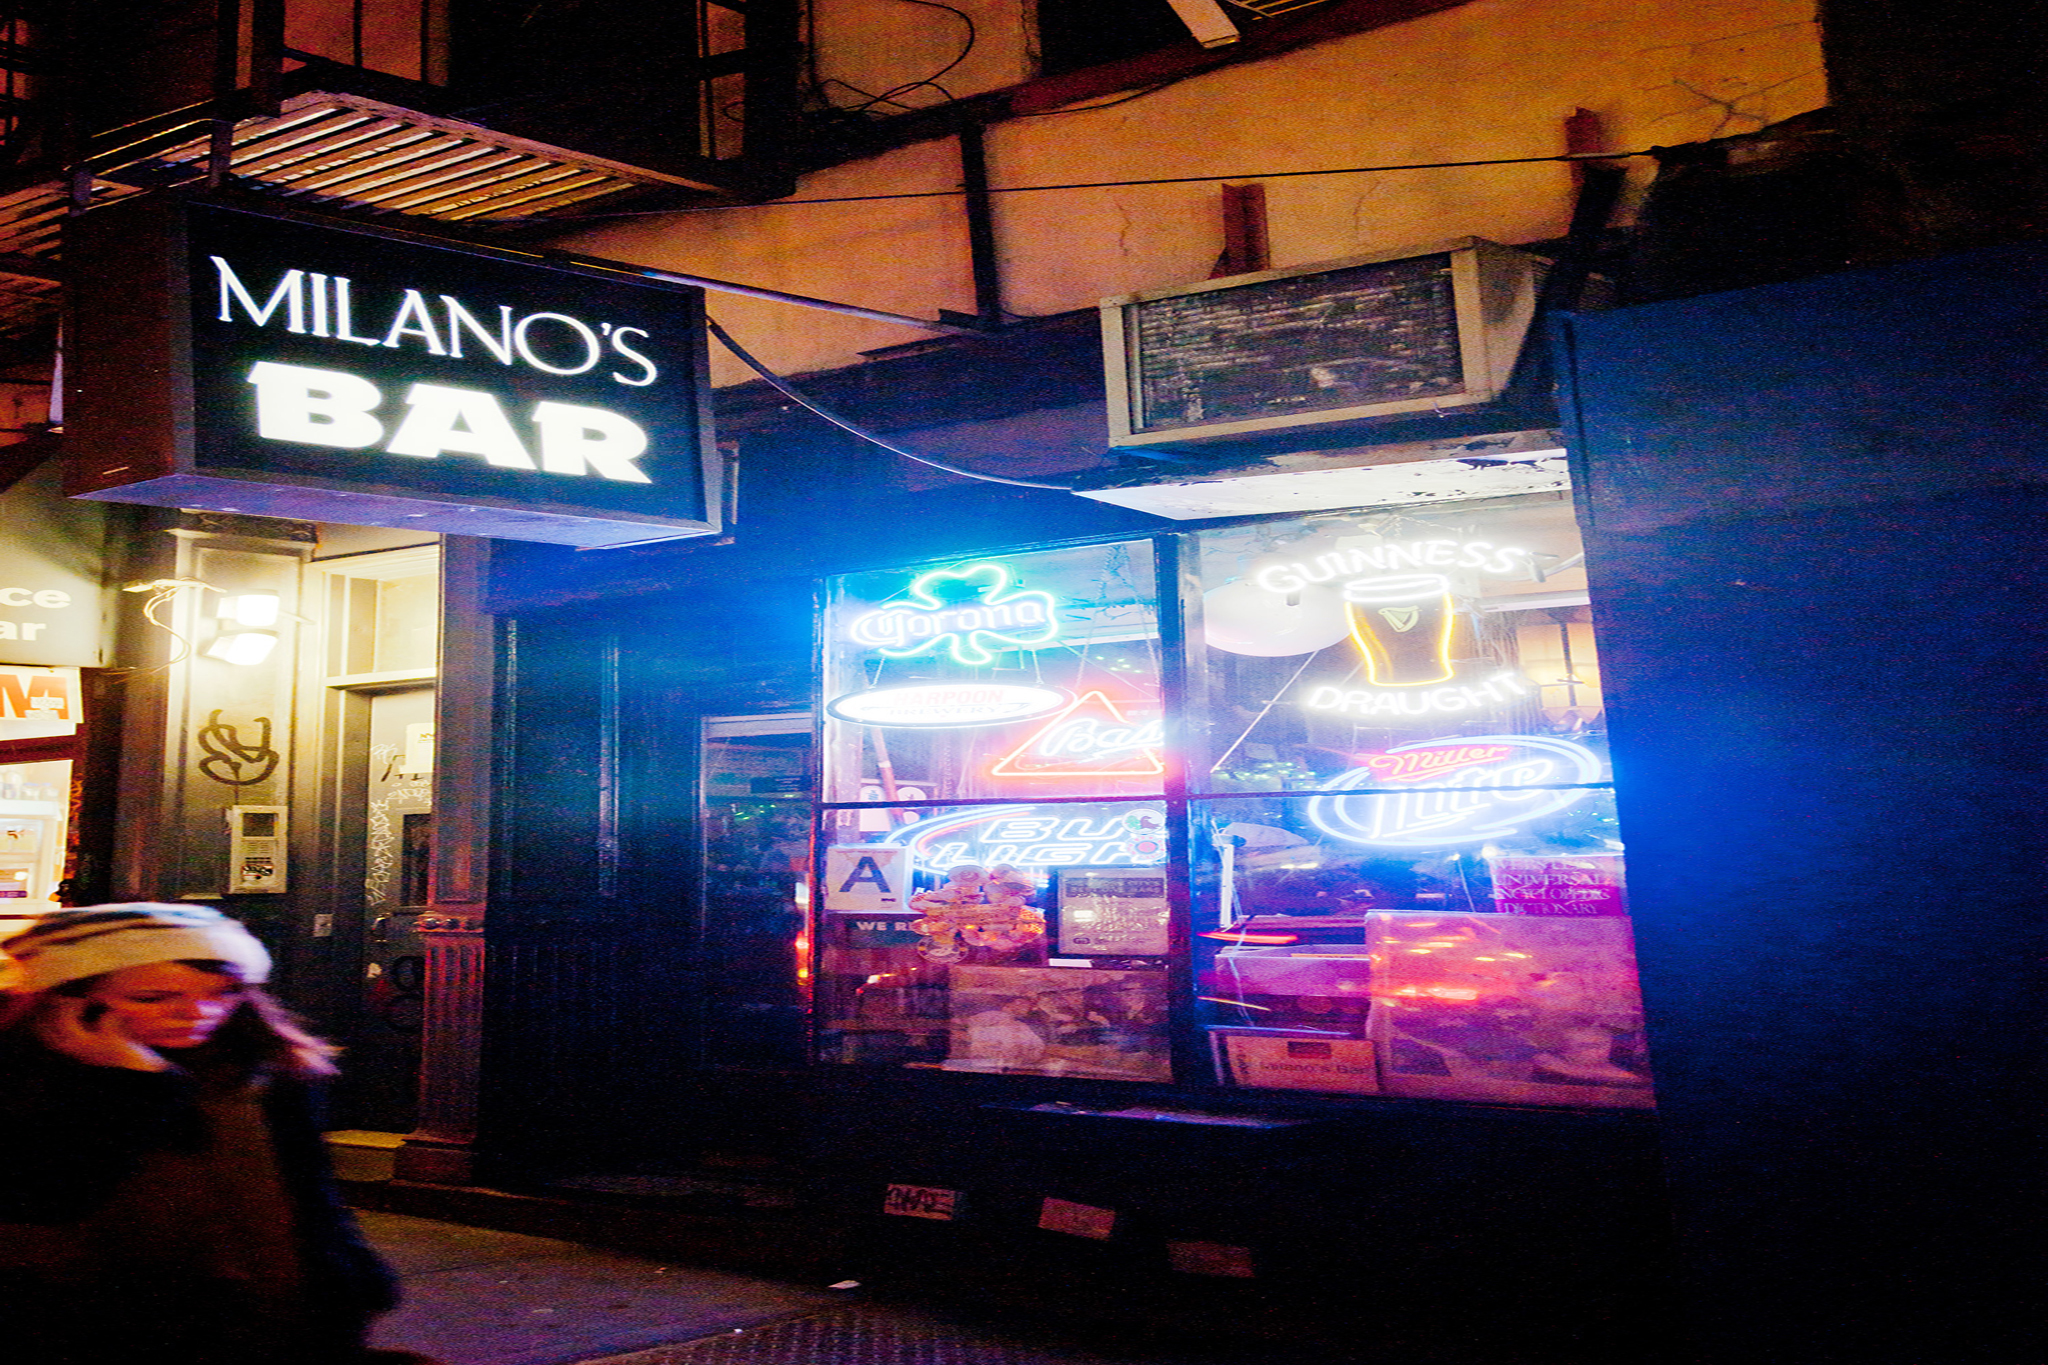 Milano's Bar